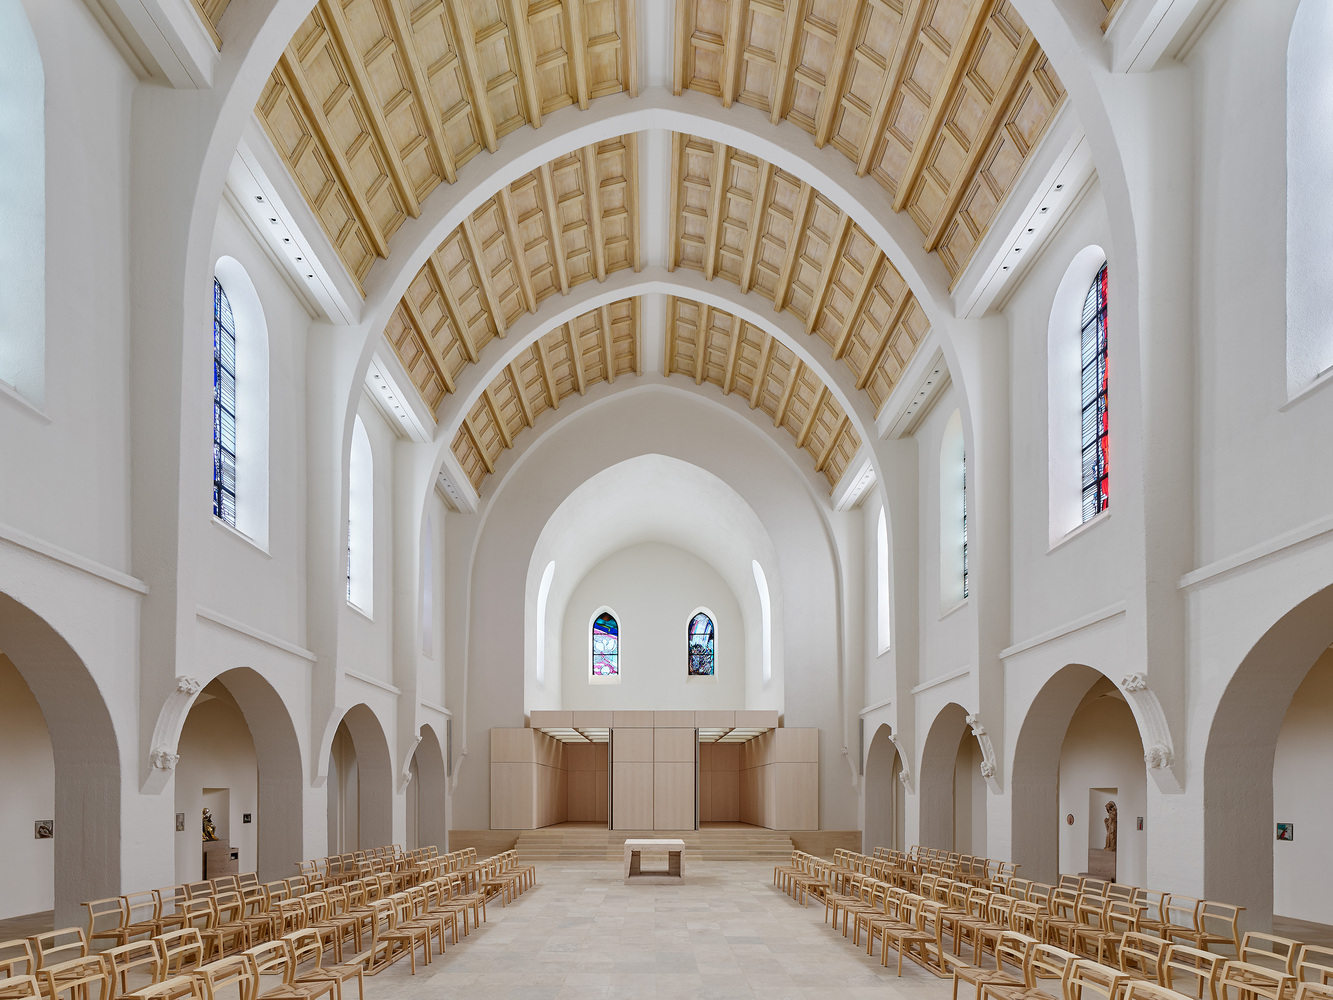 Church St. Fidelis in Stuttgart / Schleicher ragaller architekten